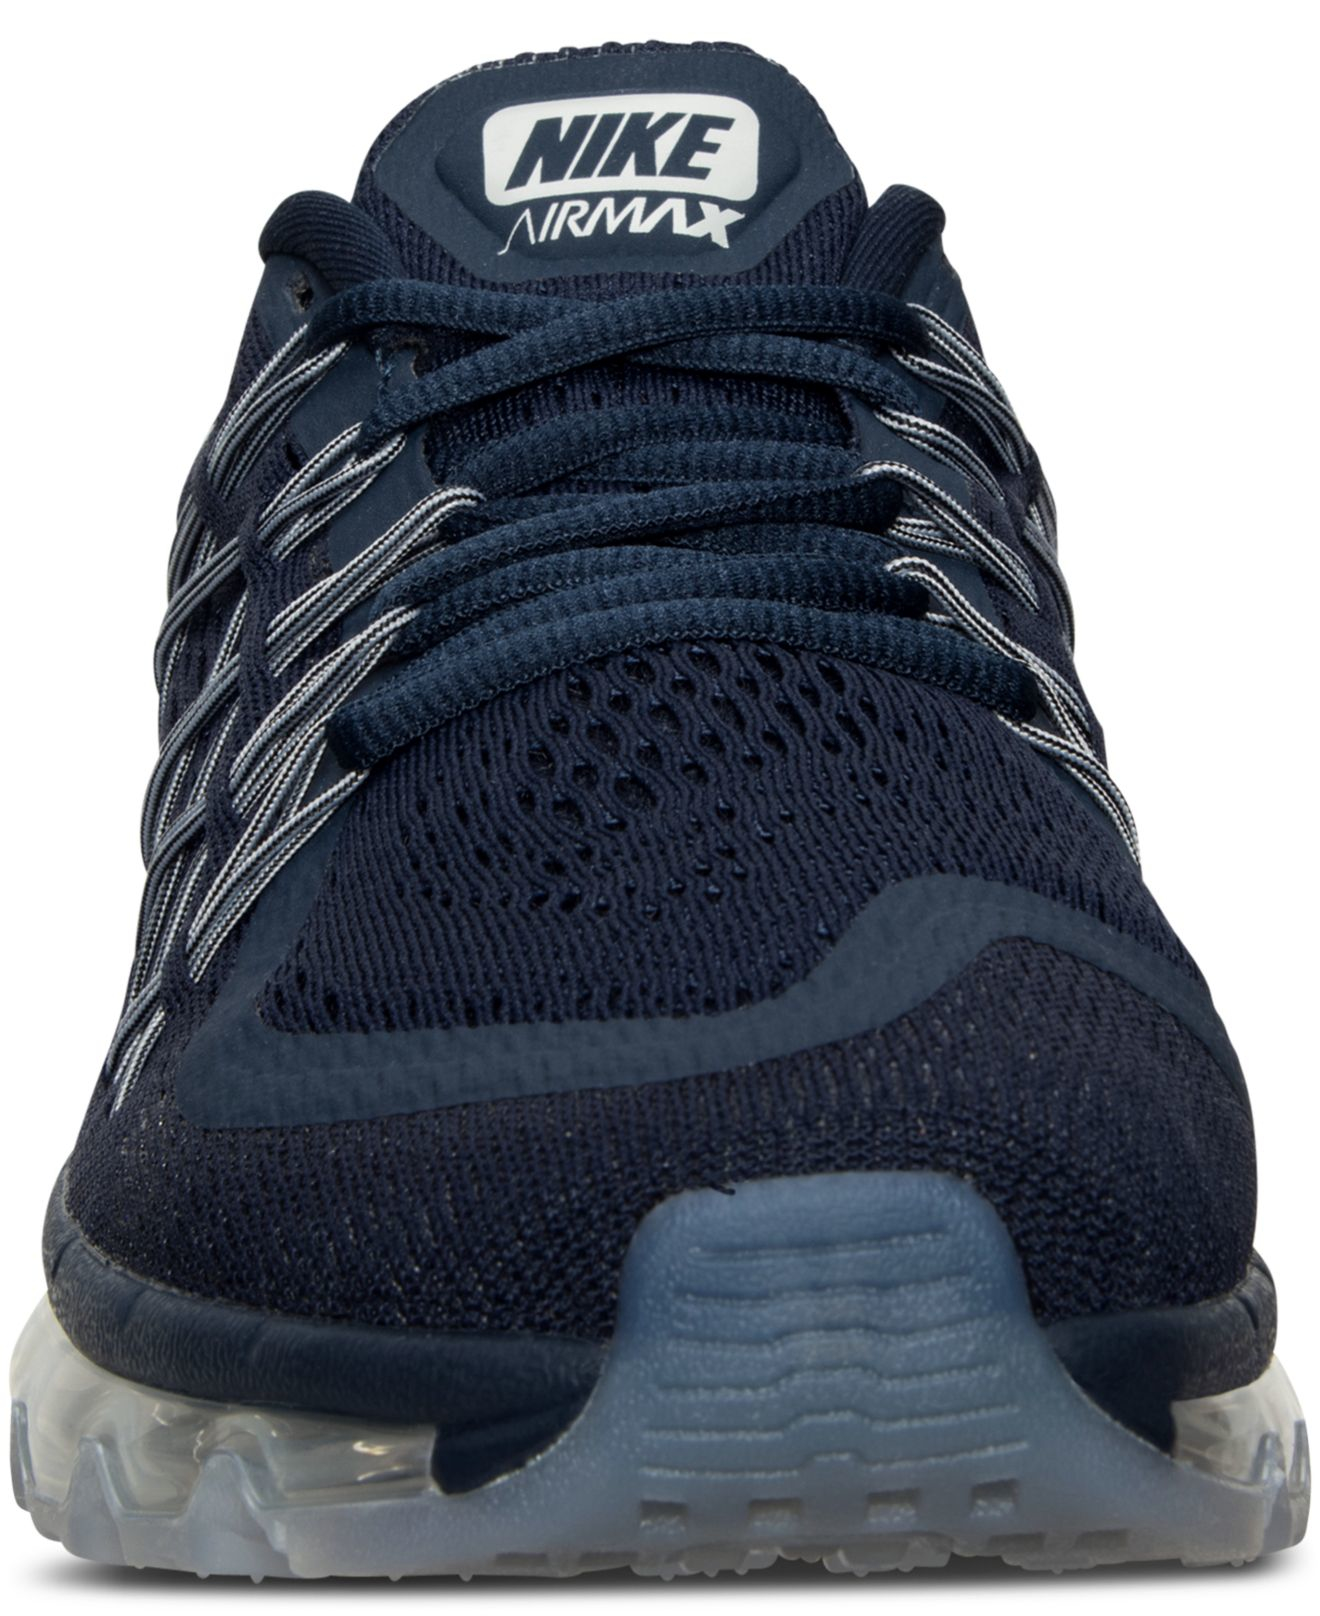 ac21846c1f8dc5 ... top quality lyst nike mens air max 2015 running sneakers from finish  line in gray for ...